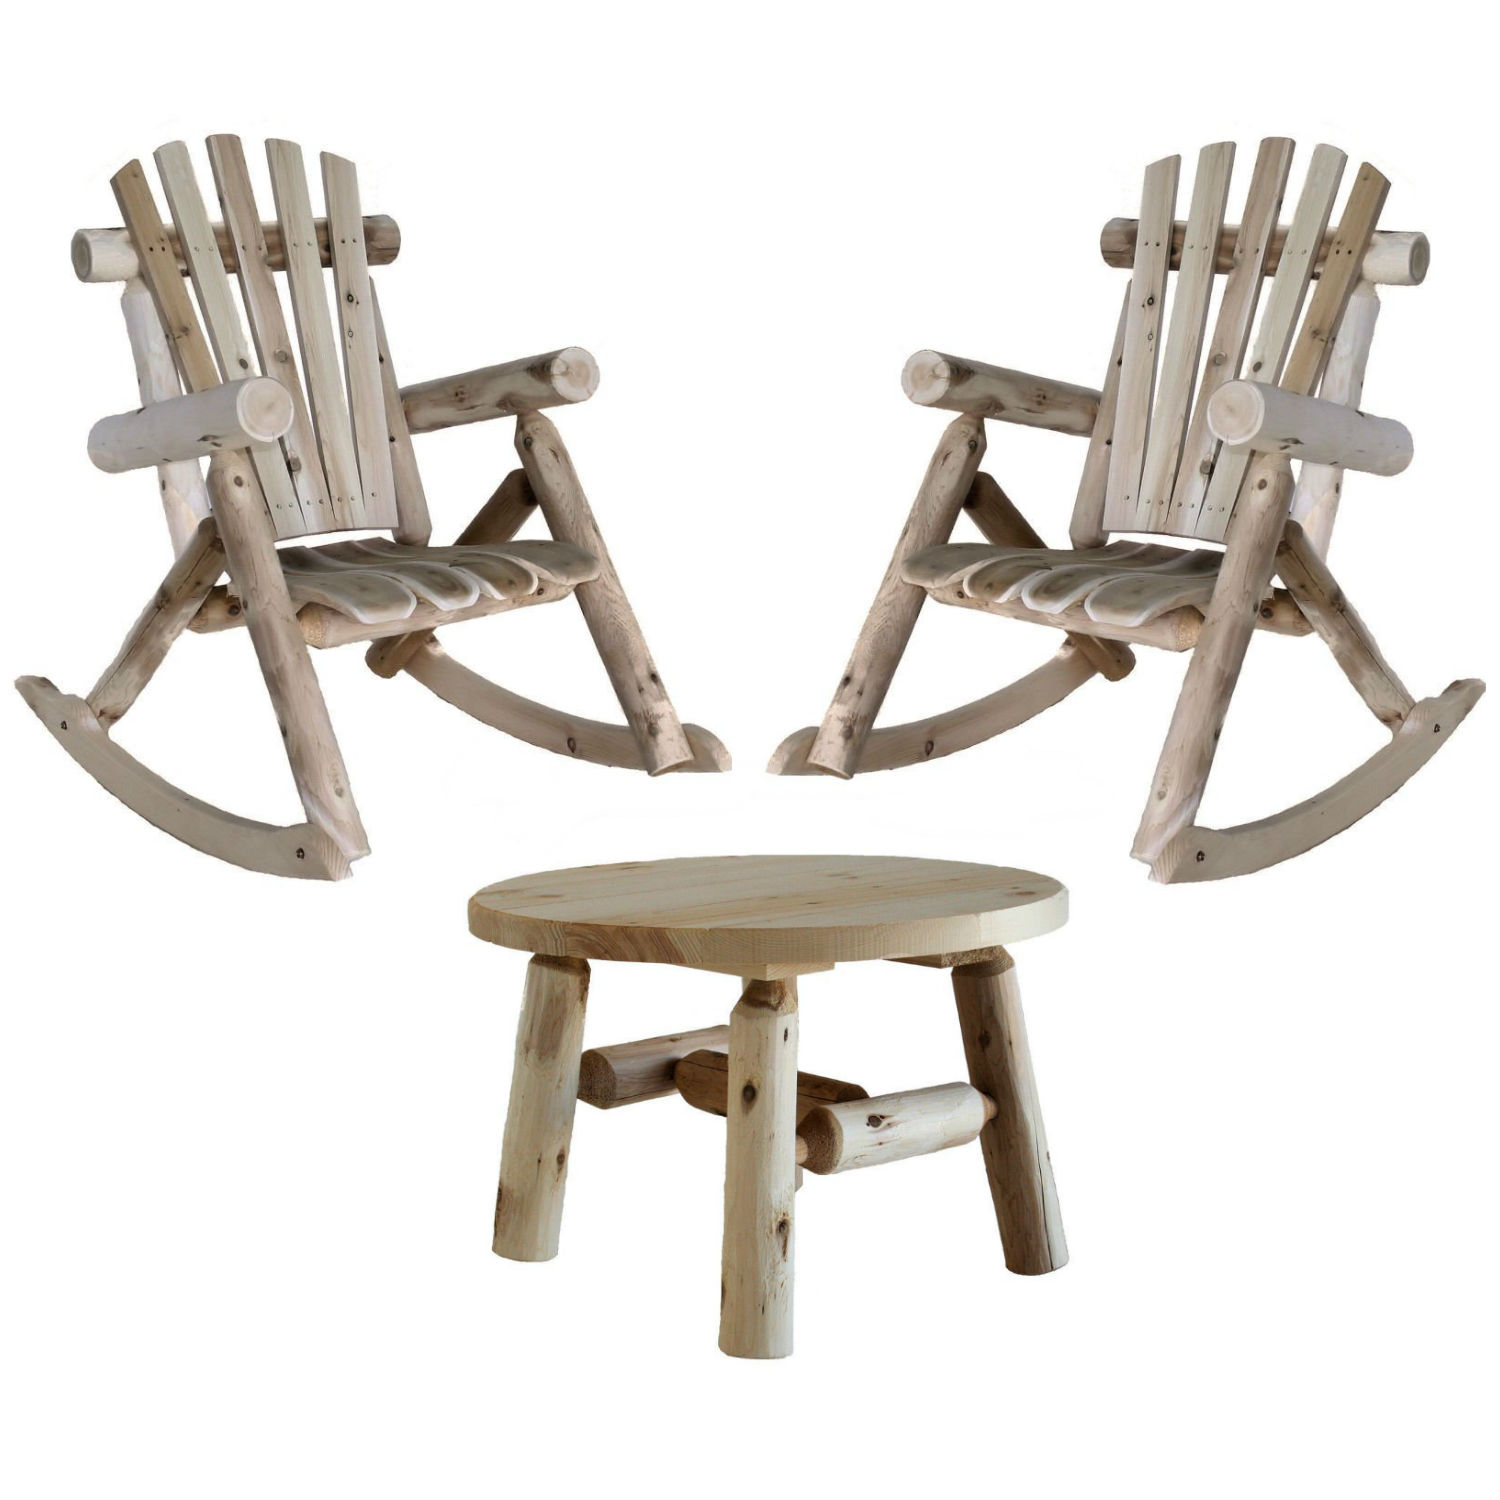 Lakeland Mills Patio Rocking Chair (Set of 2) with Round Table